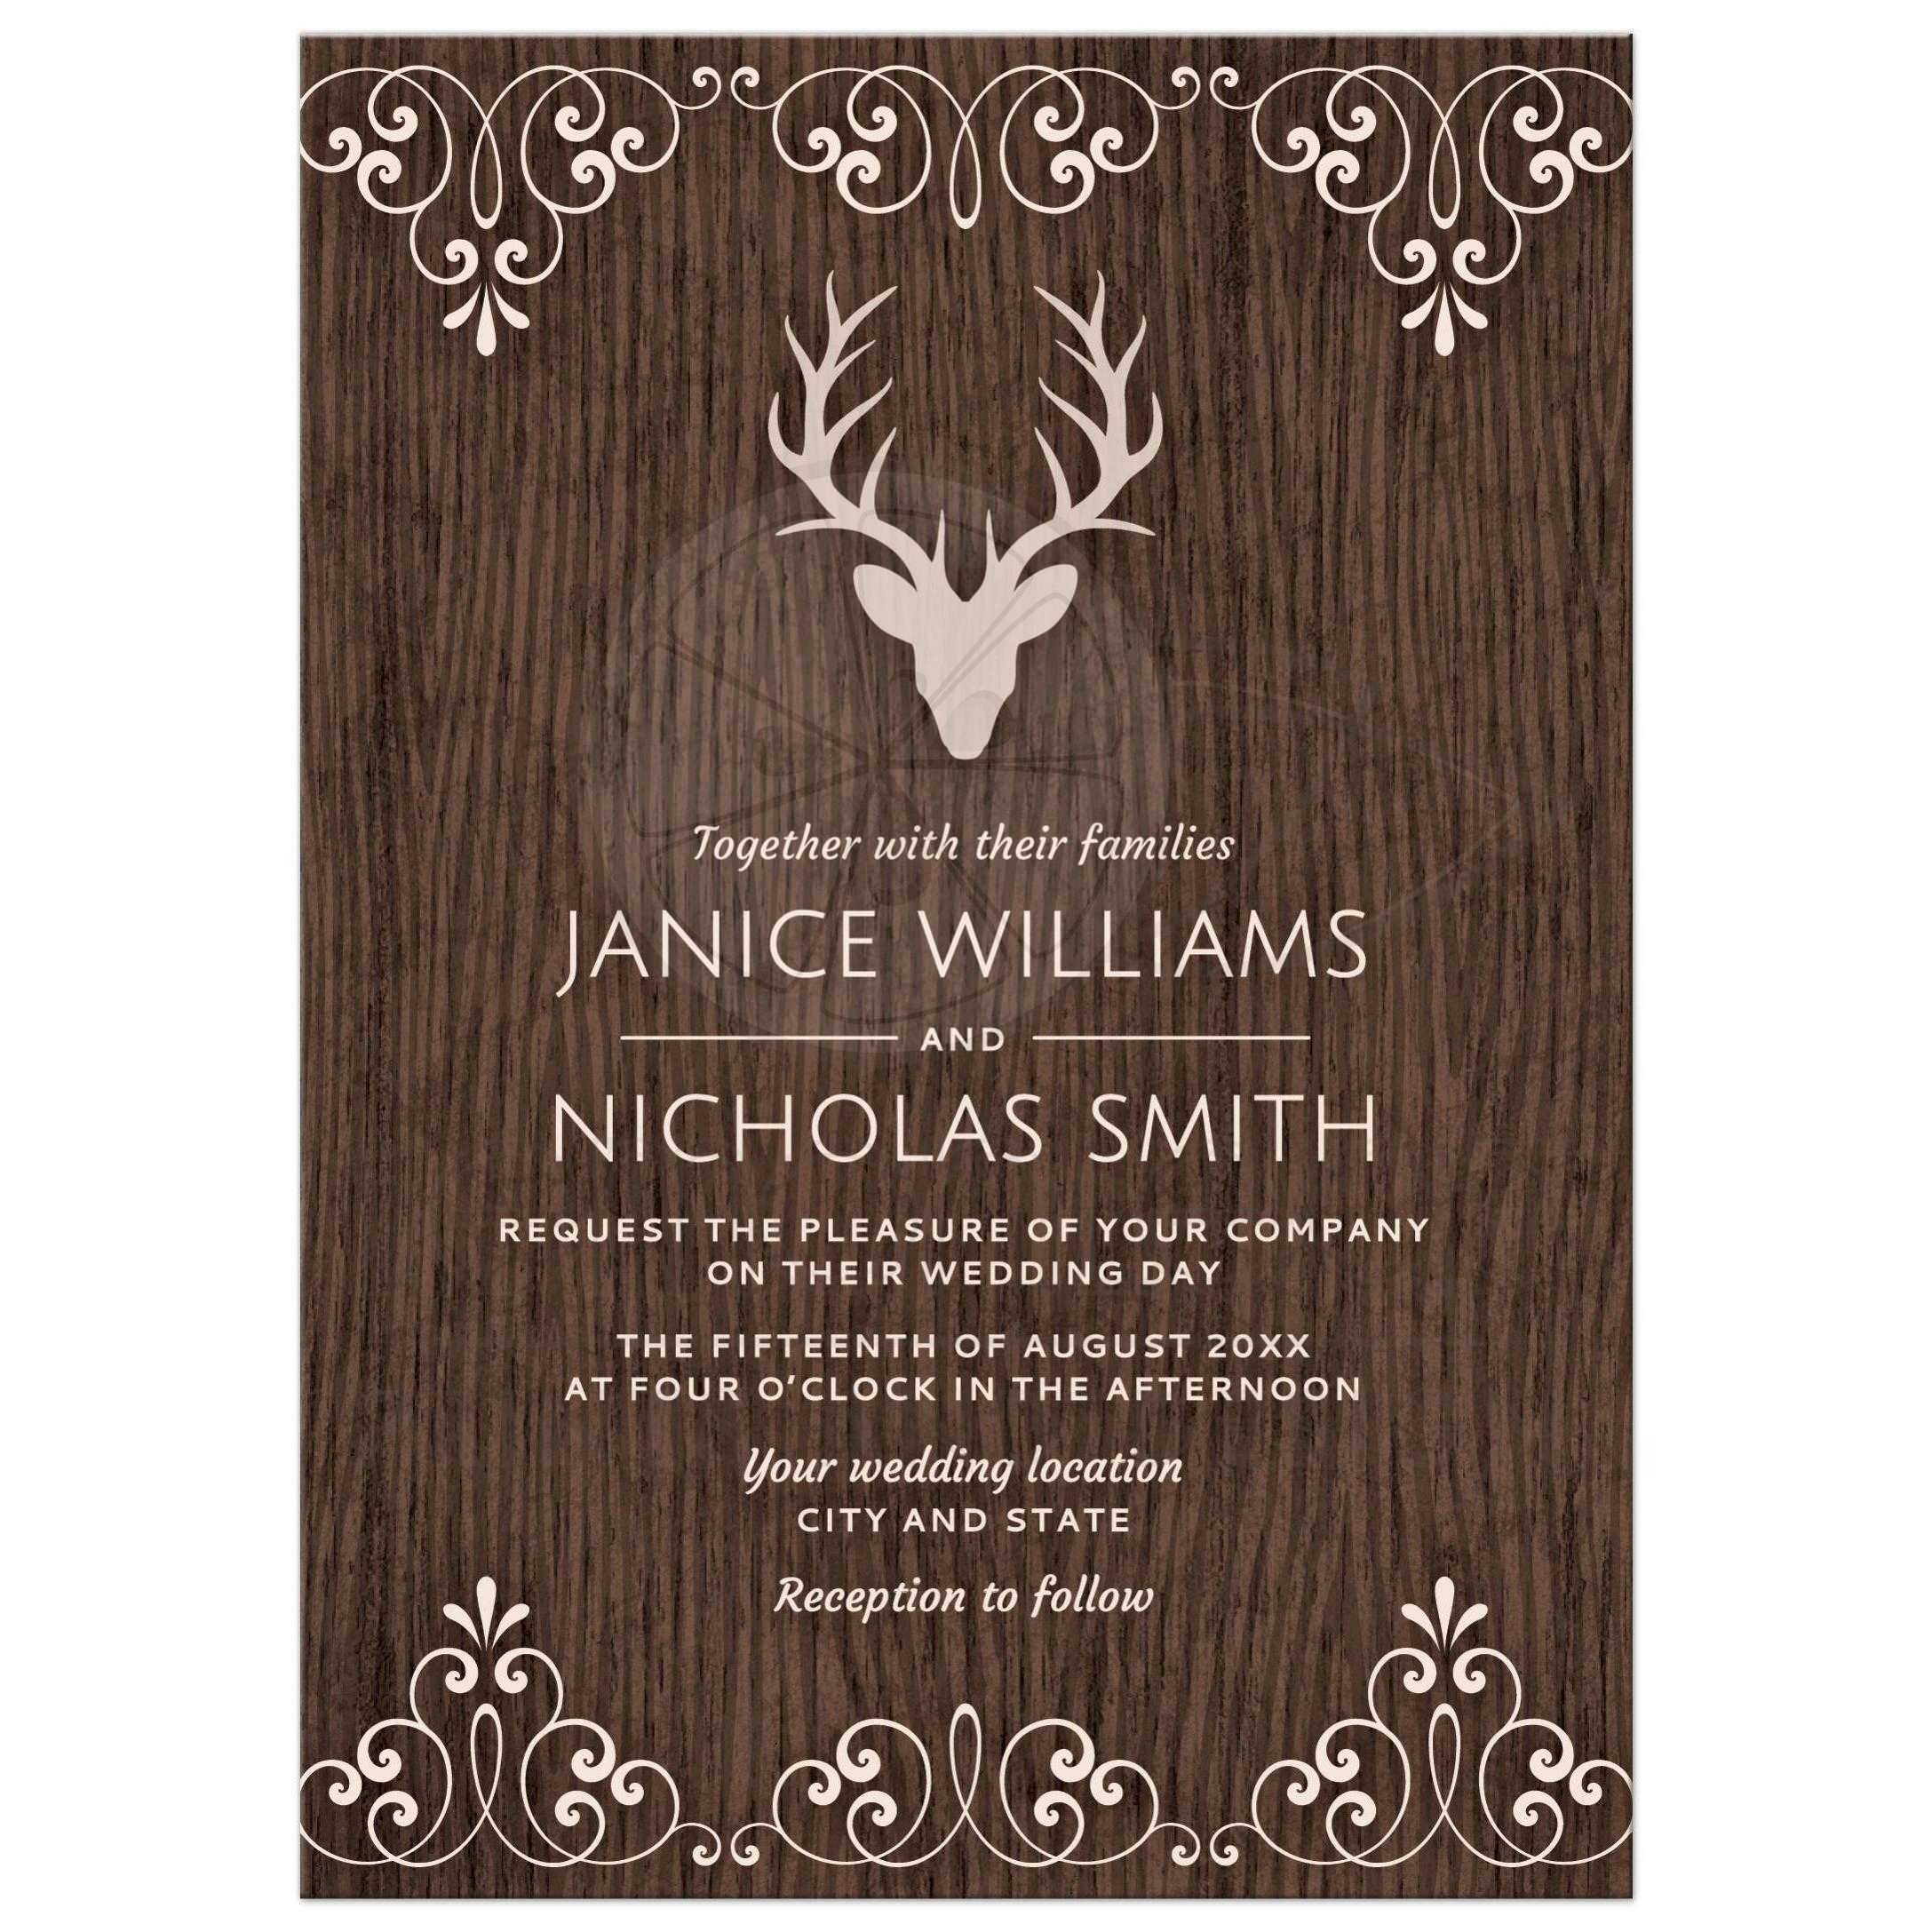 Stag With Antlers On Rustic Wood Wedding Invitation